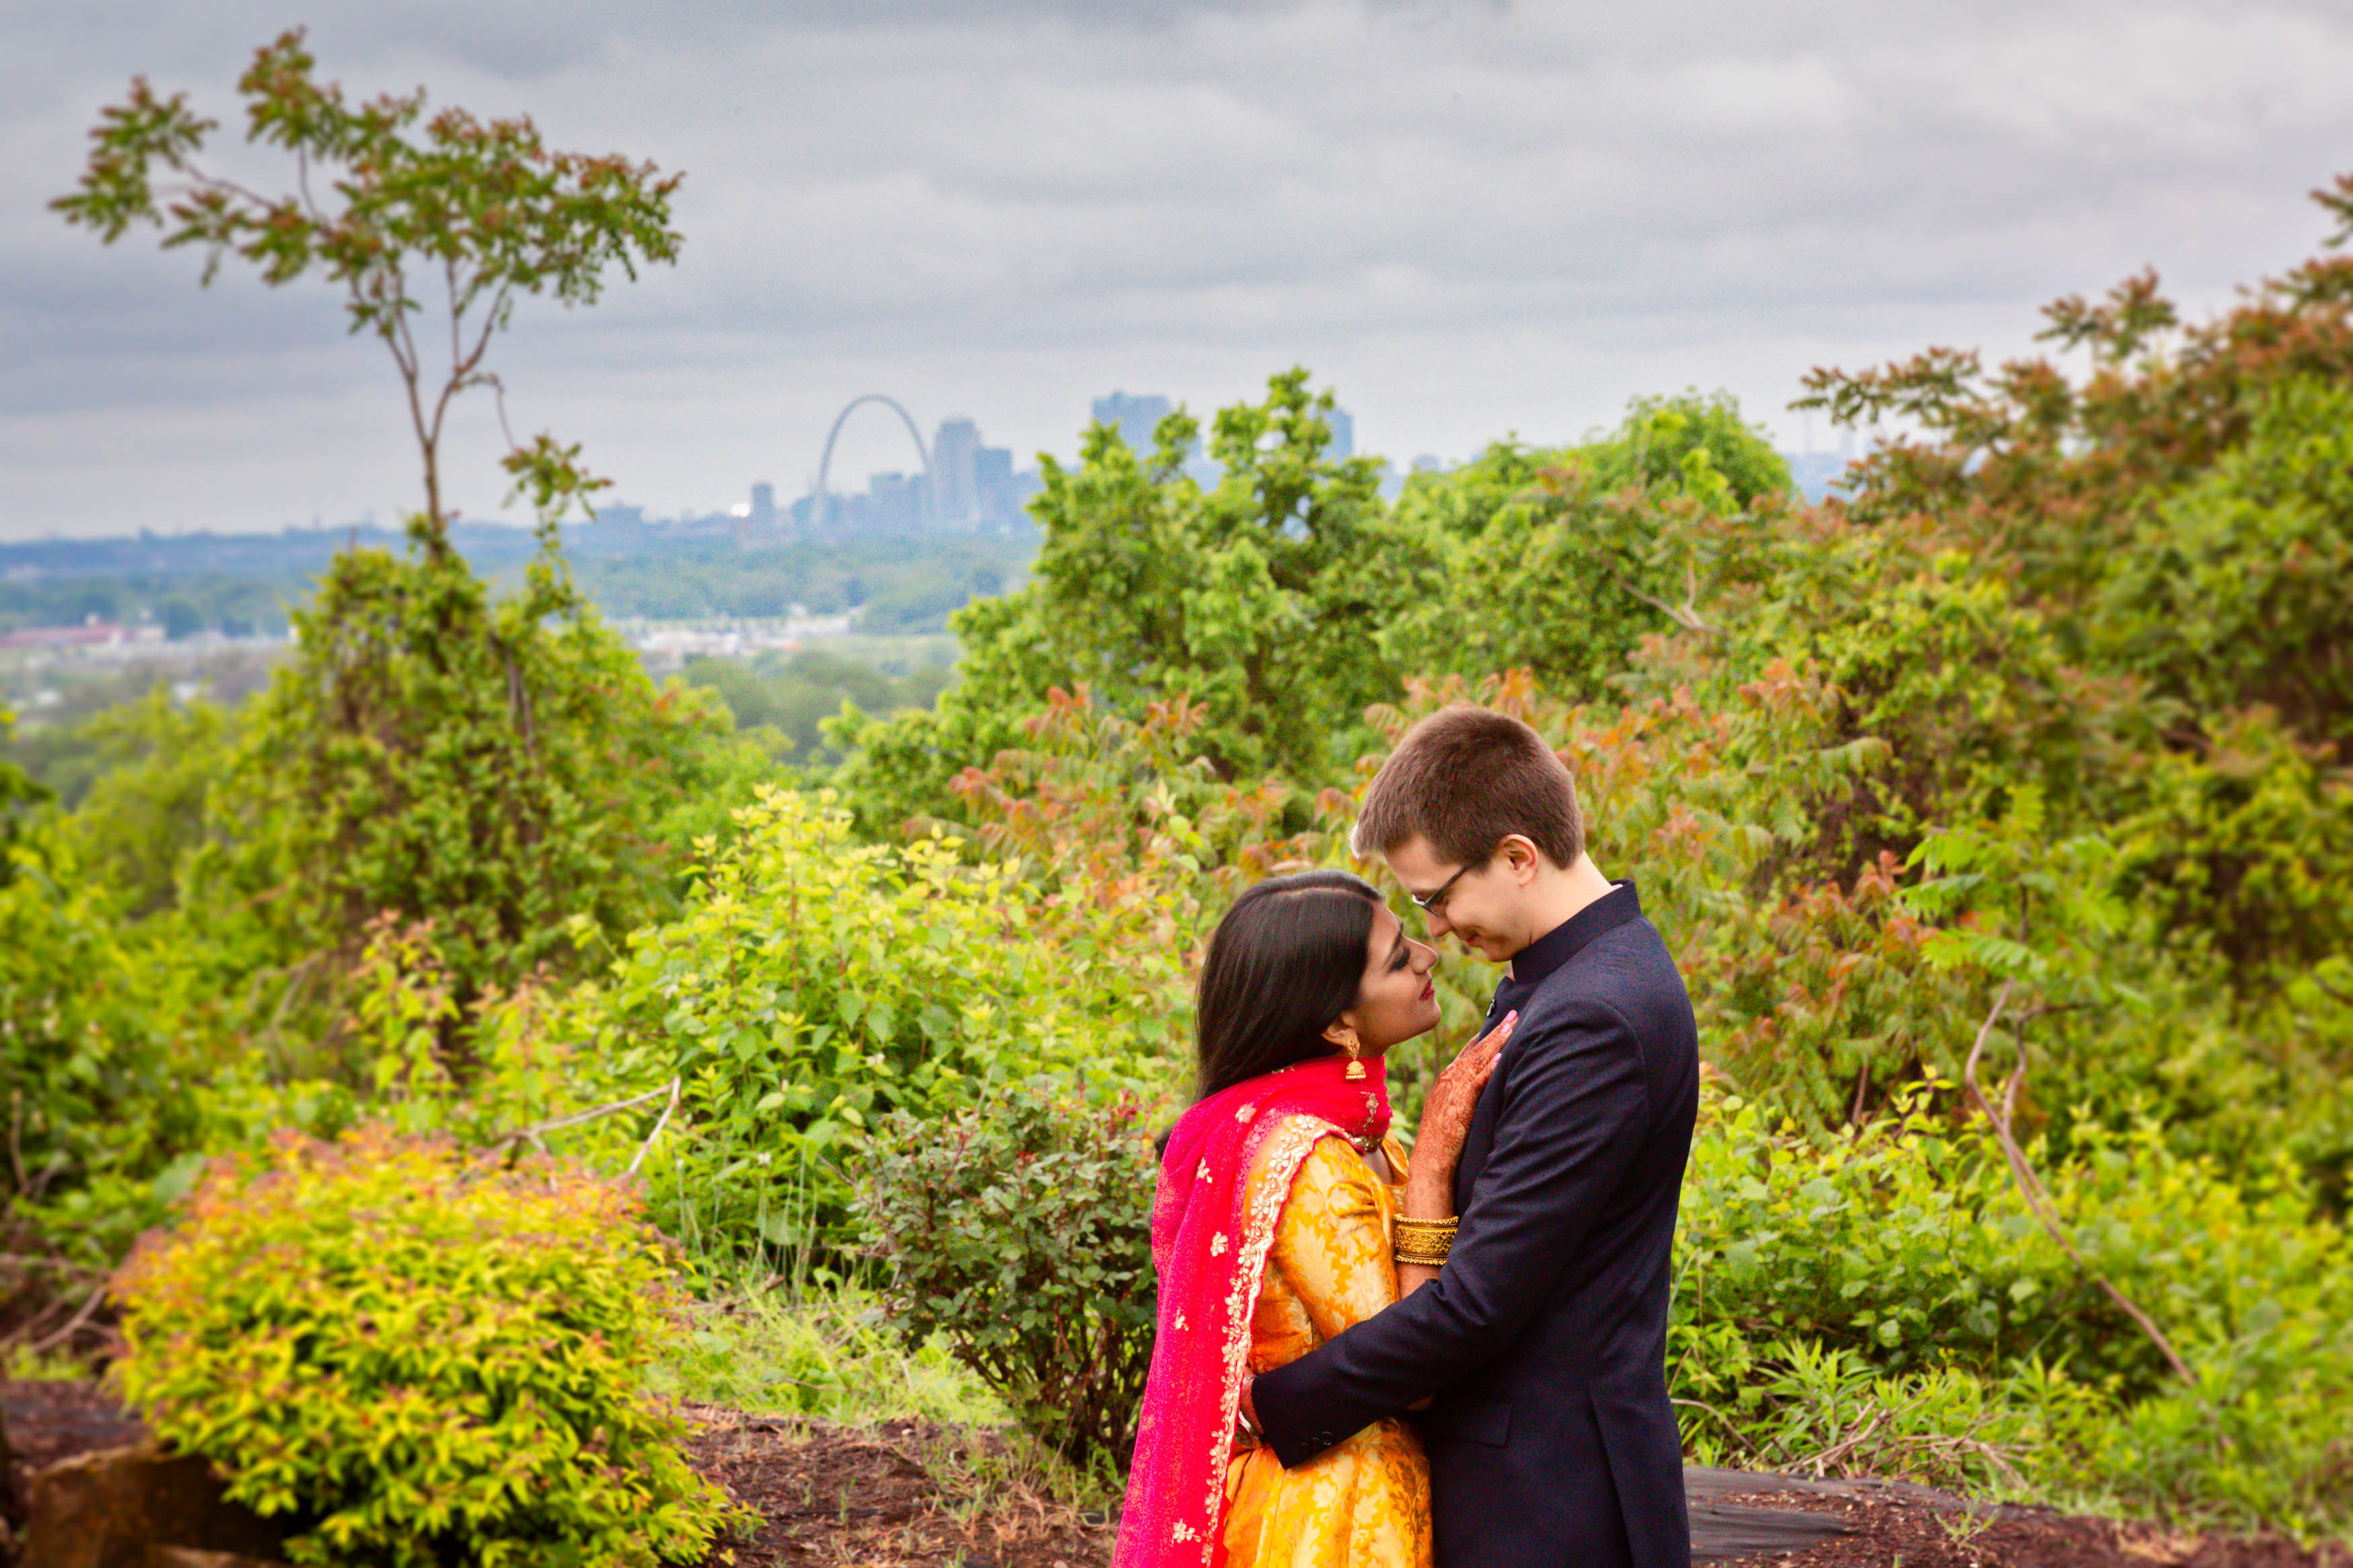 st-louis-indian-wedding-arch-wedding-pho